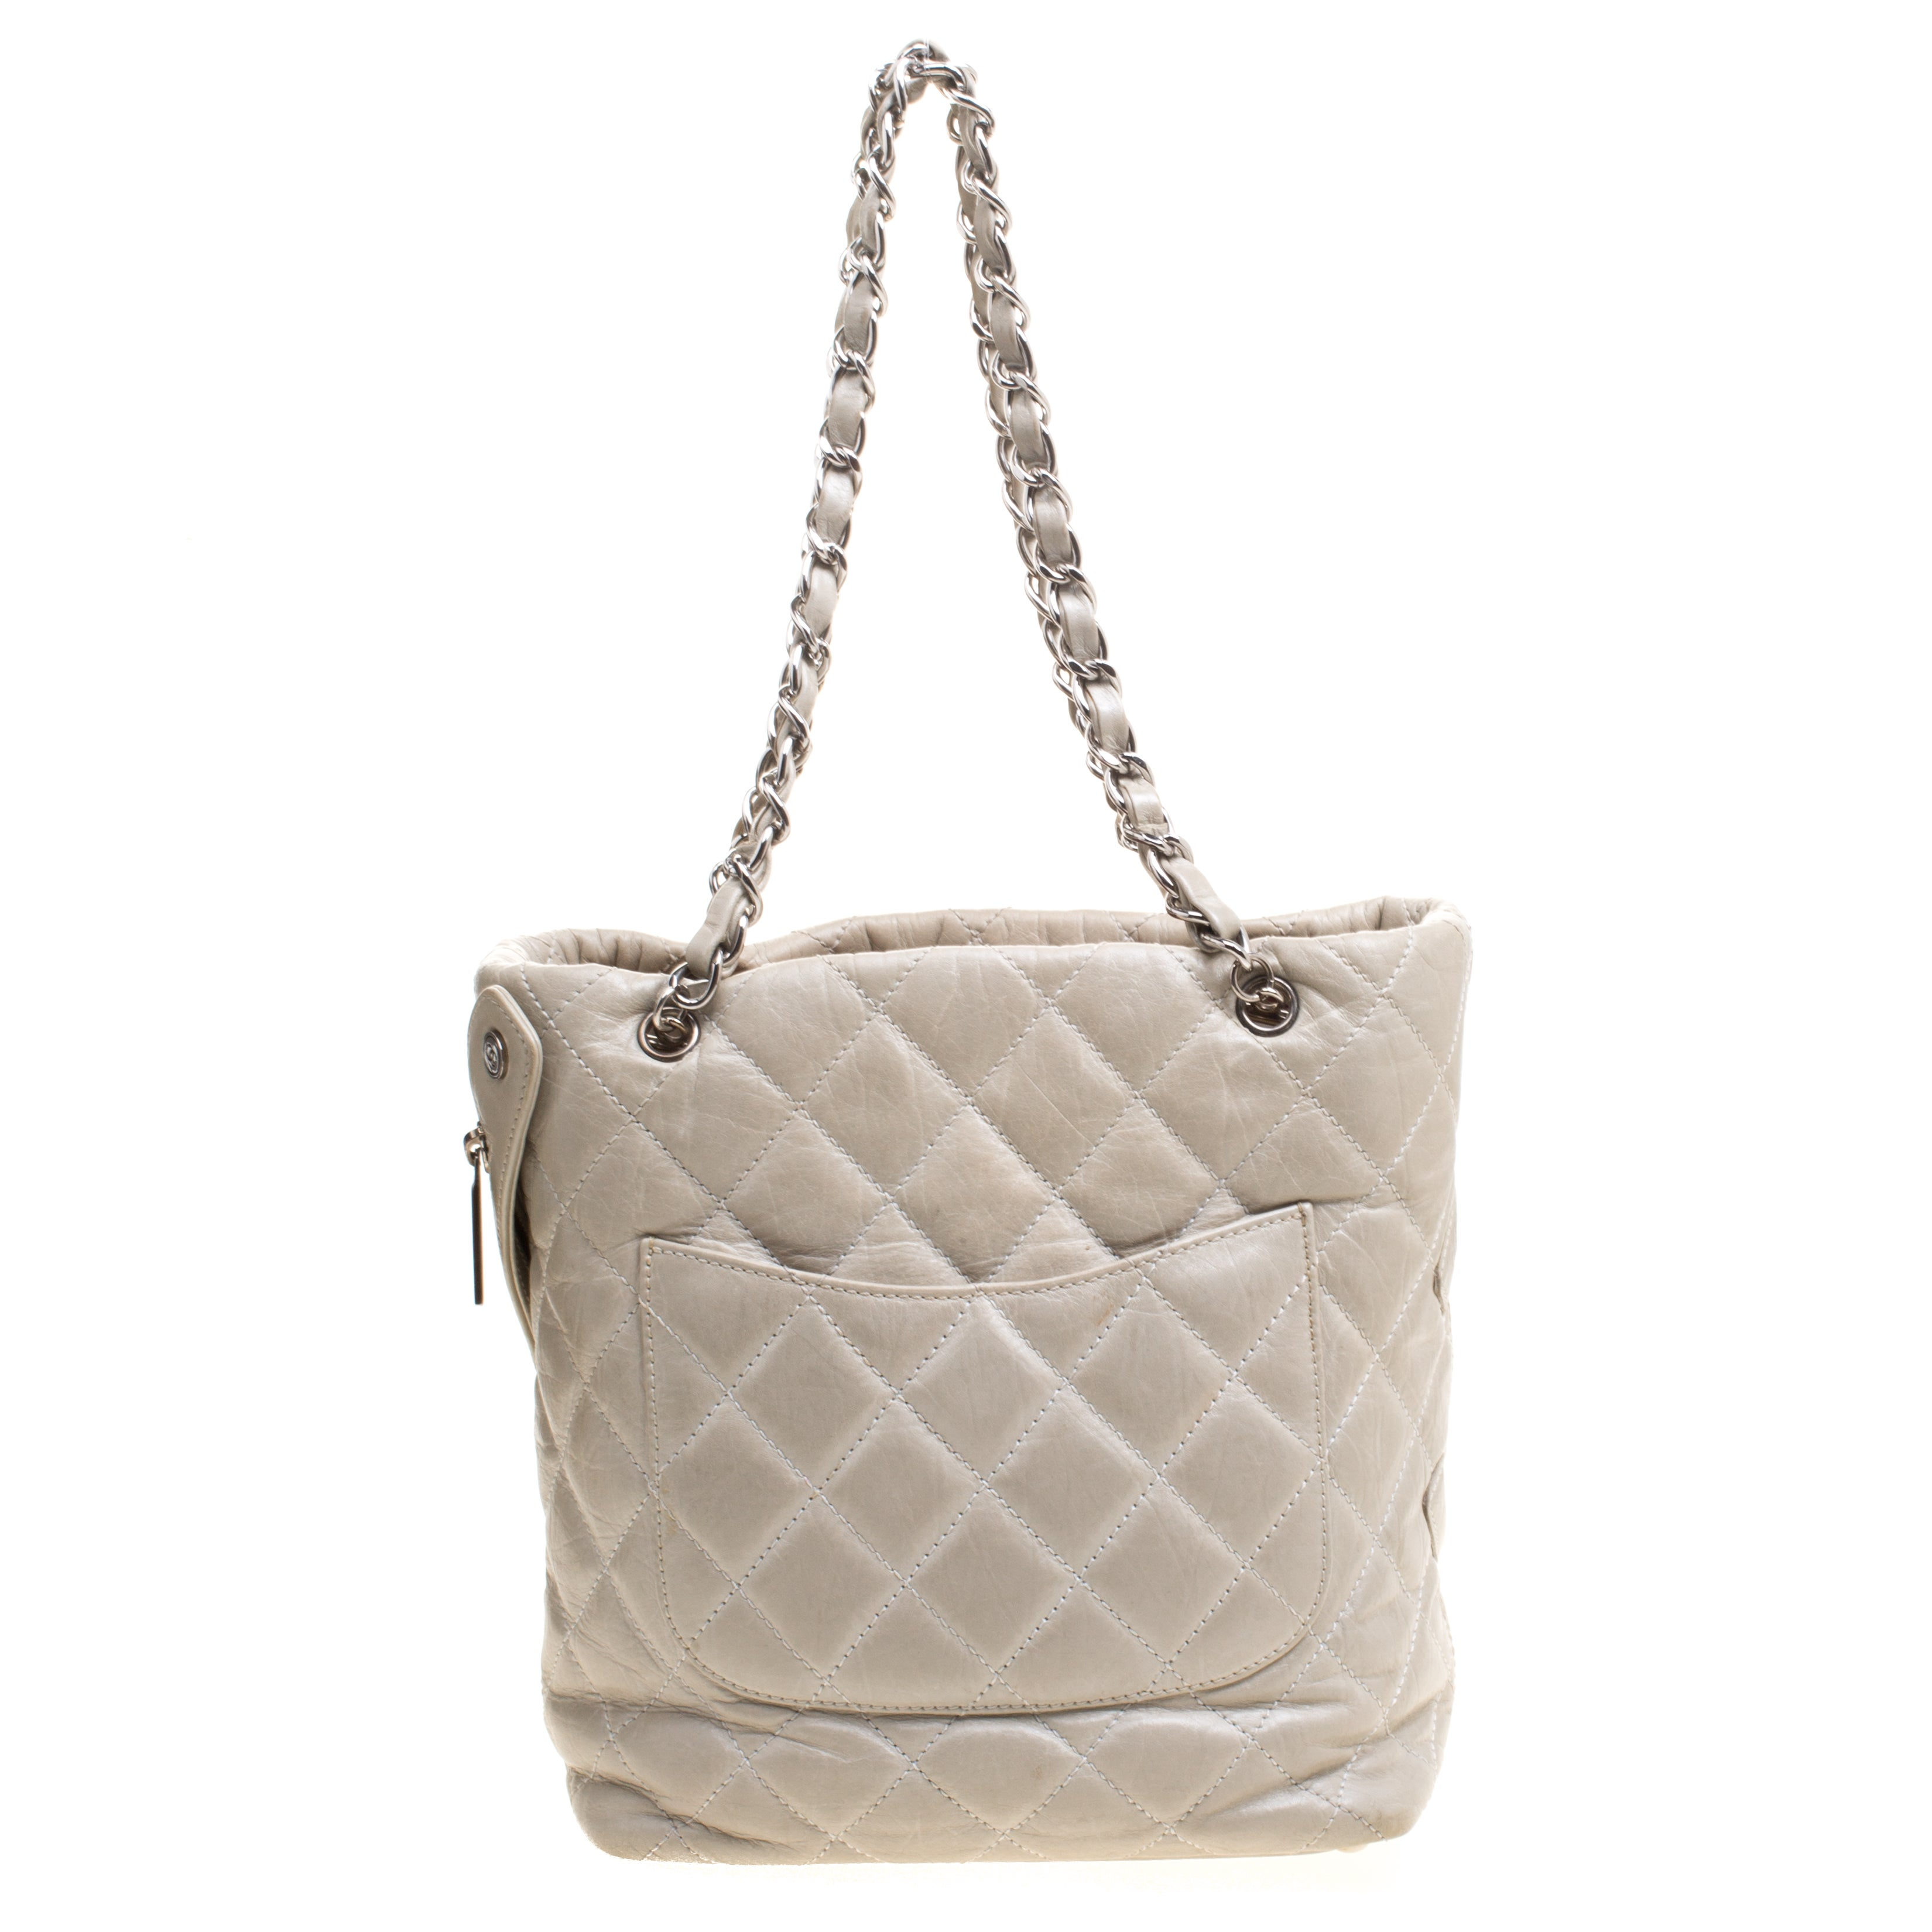 68483dd6ee73 Chanel Grey Quilted Leather CC Bucket Bag For Sale at 1stdibs